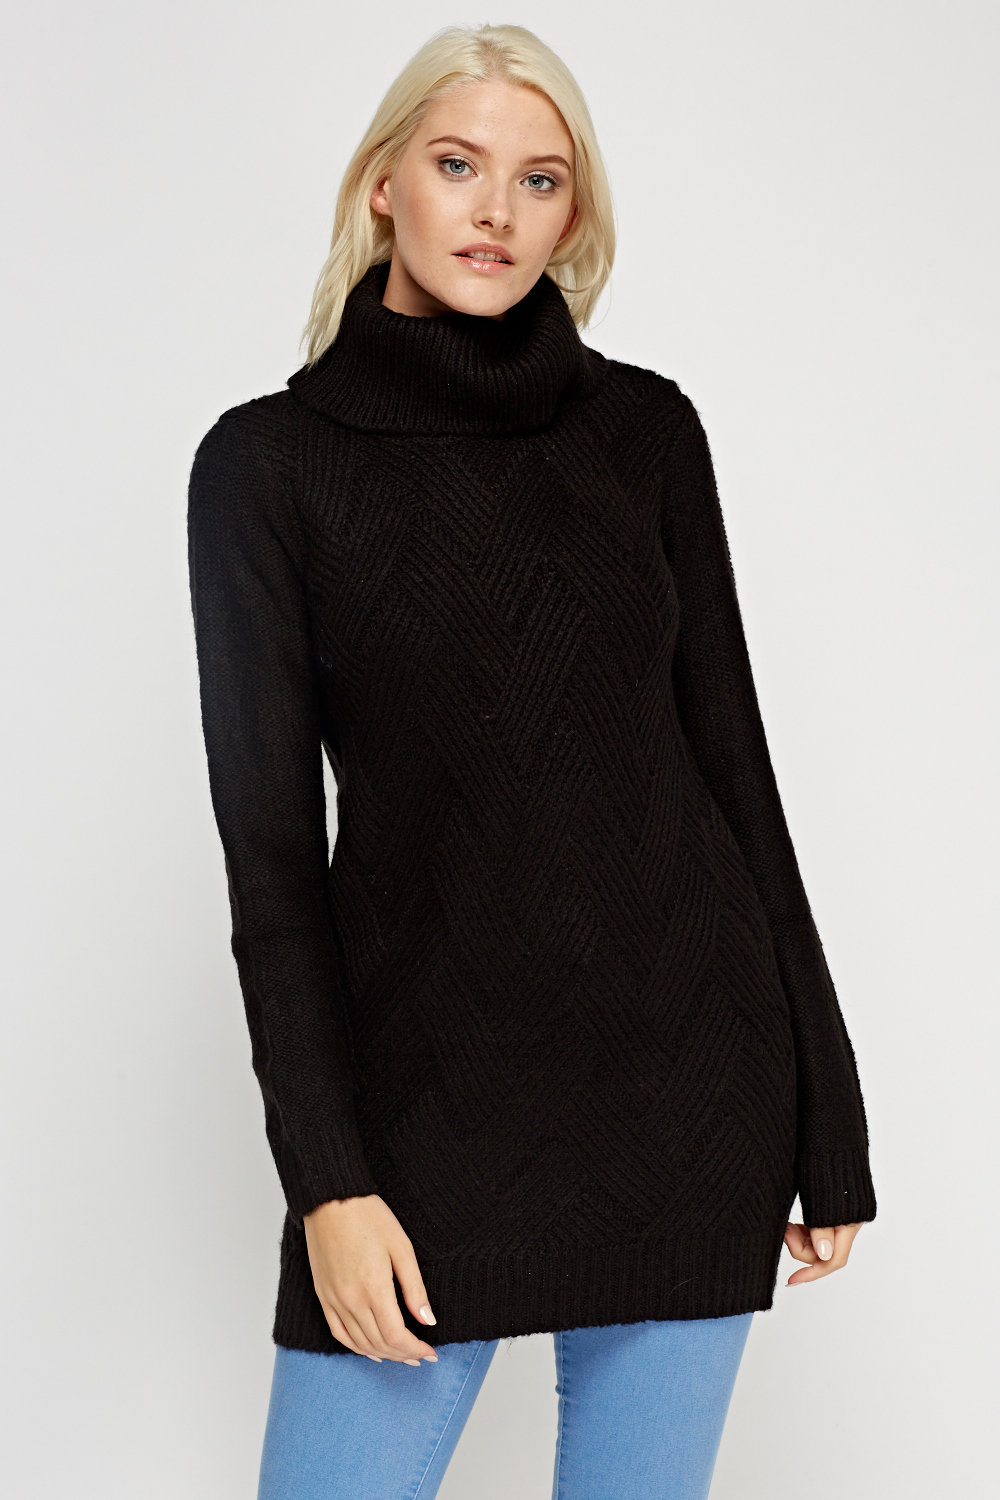 0a76358f9 Cable Knit Roll Neck Jumper - Just £5